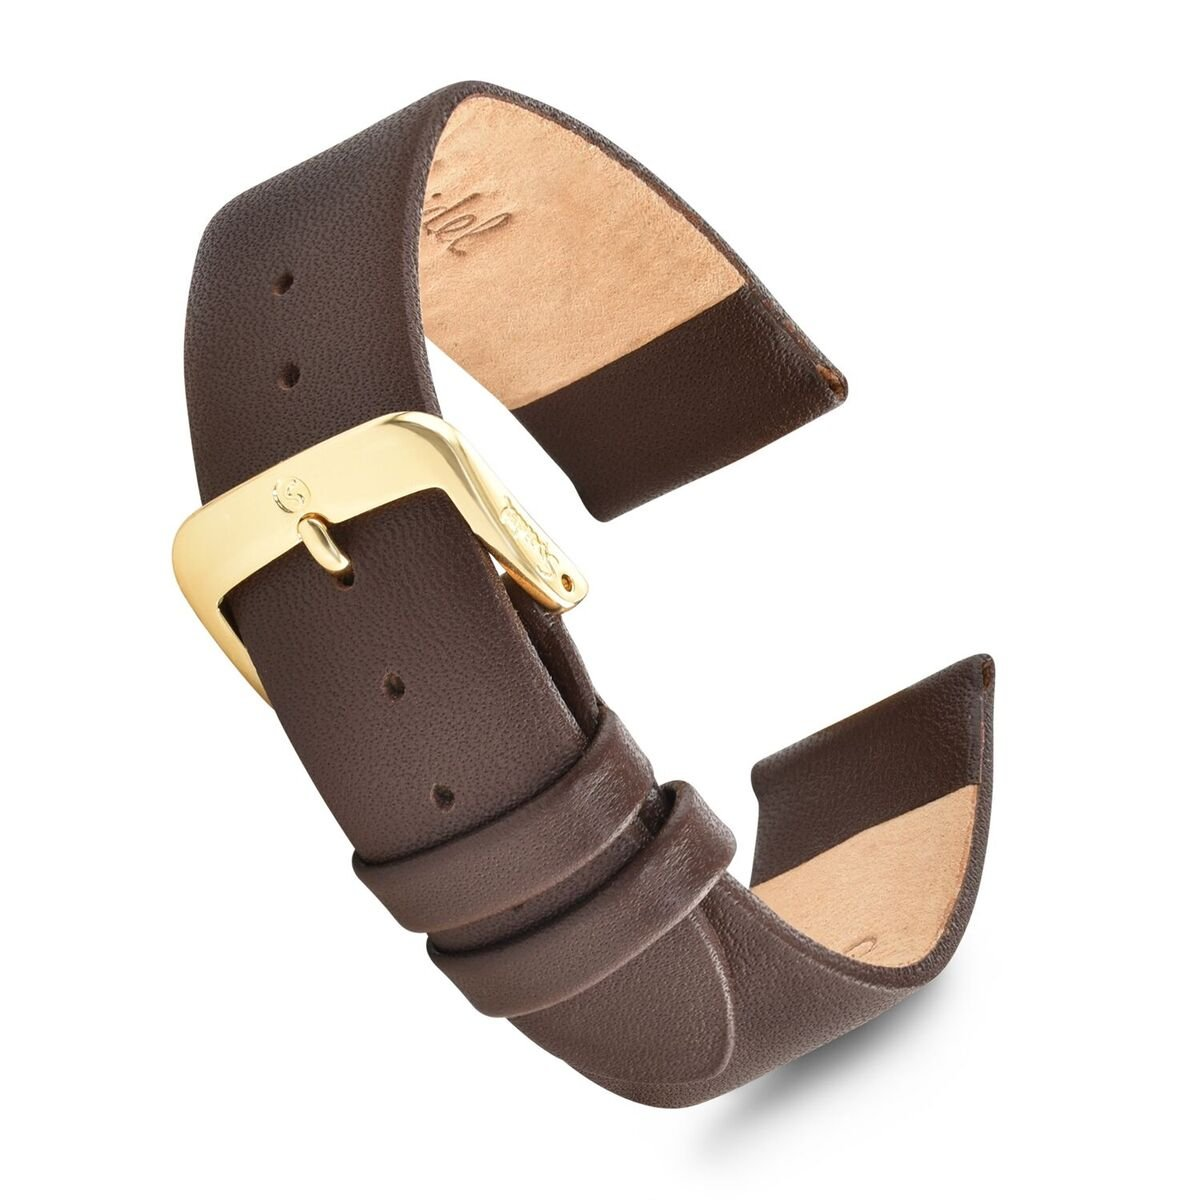 Speidel Genuine Leather Watch Band 20mm Brown Calf Skin Replacement Strap, Stainless Steel Metal Buckle Clasp, Watchband Fits Most Watch Brands